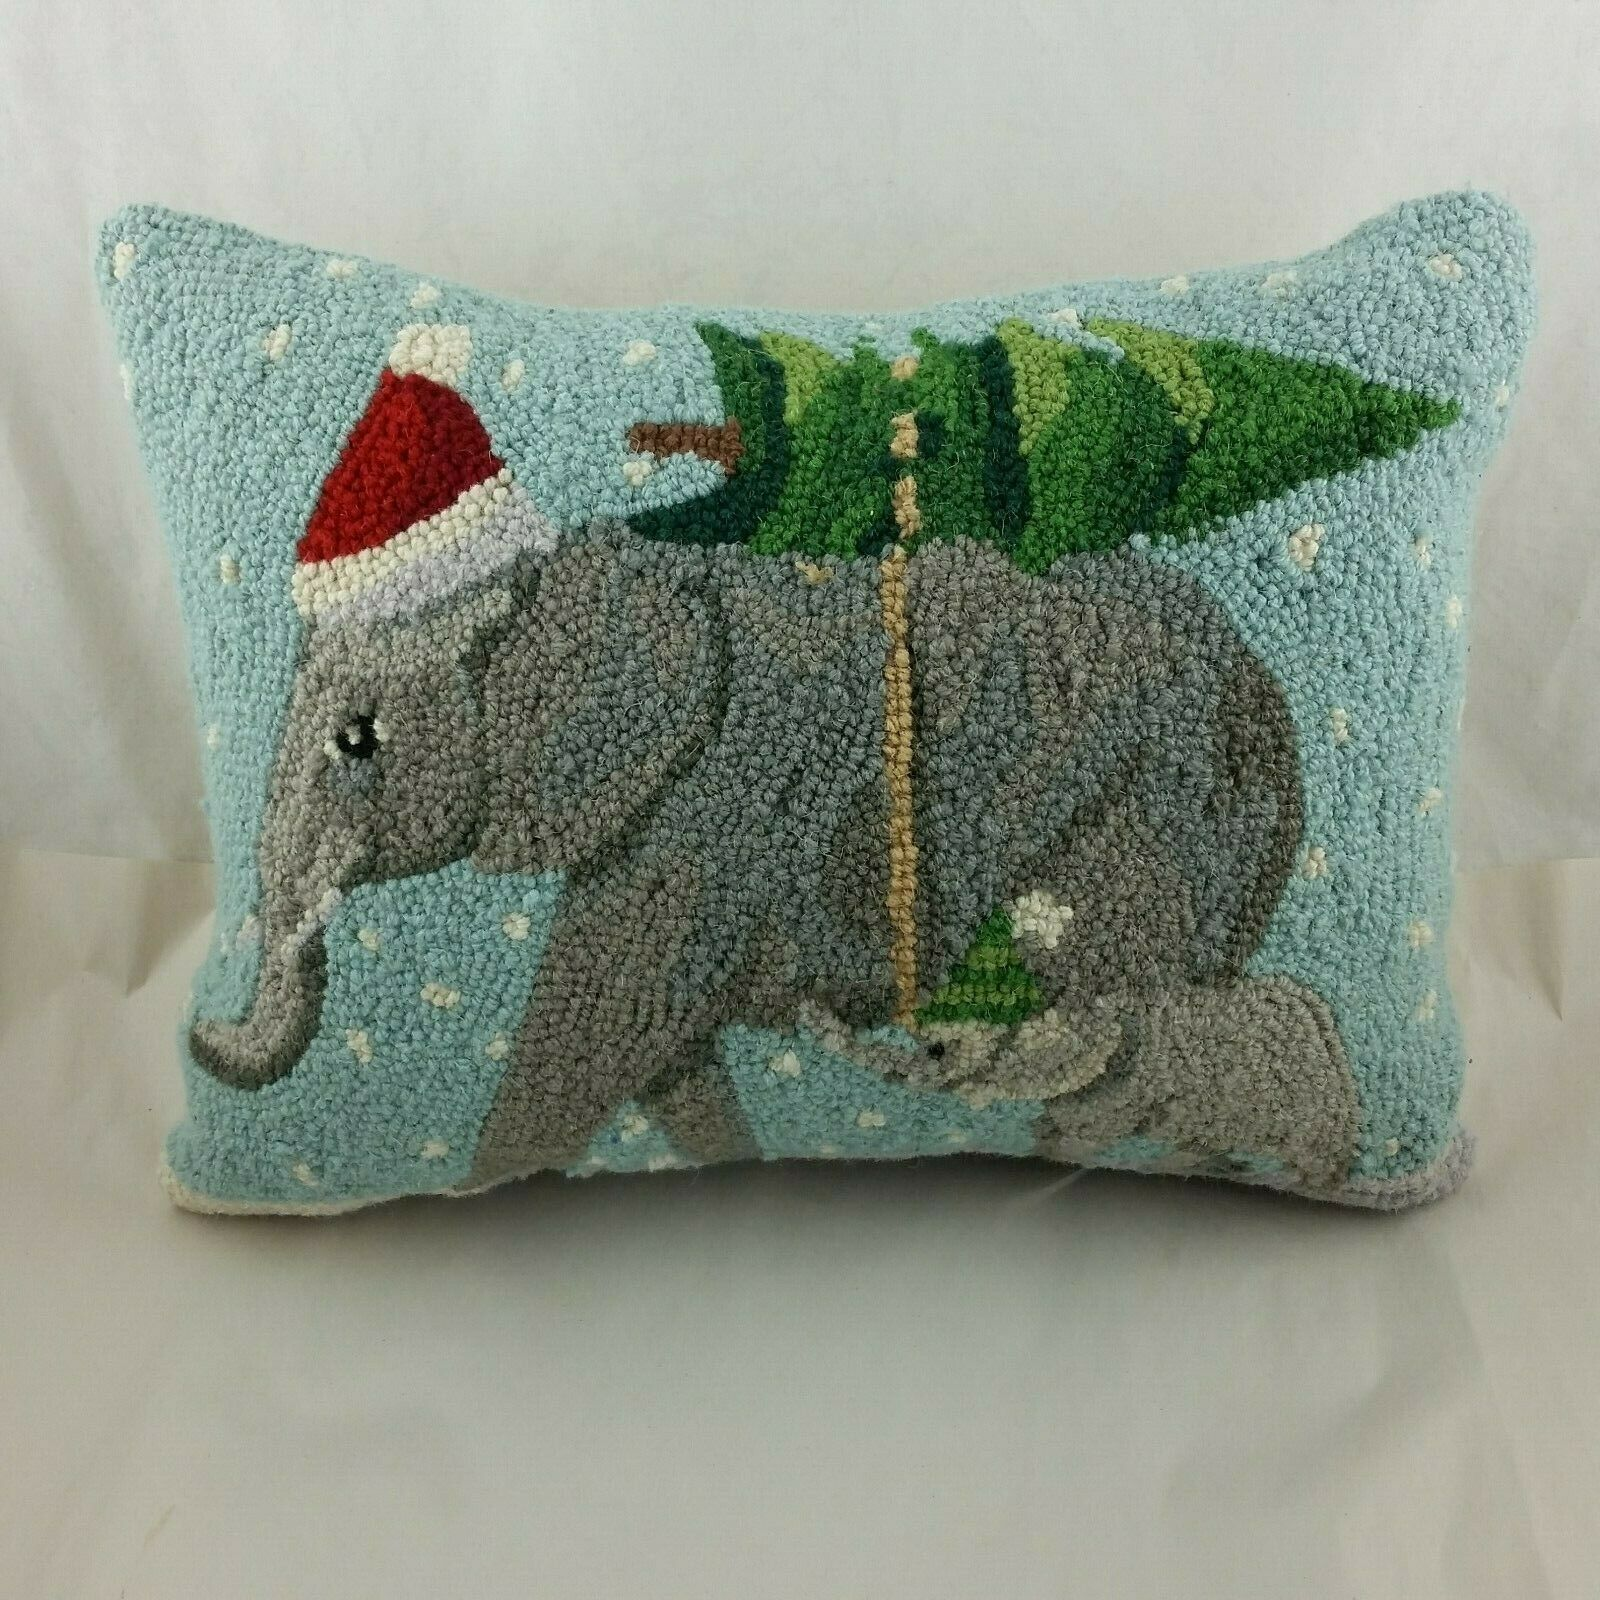 The Holiday Aisle Fredette Prancing Reindeer Hook Wool Lumbar Pillow For Sale Online Ebay